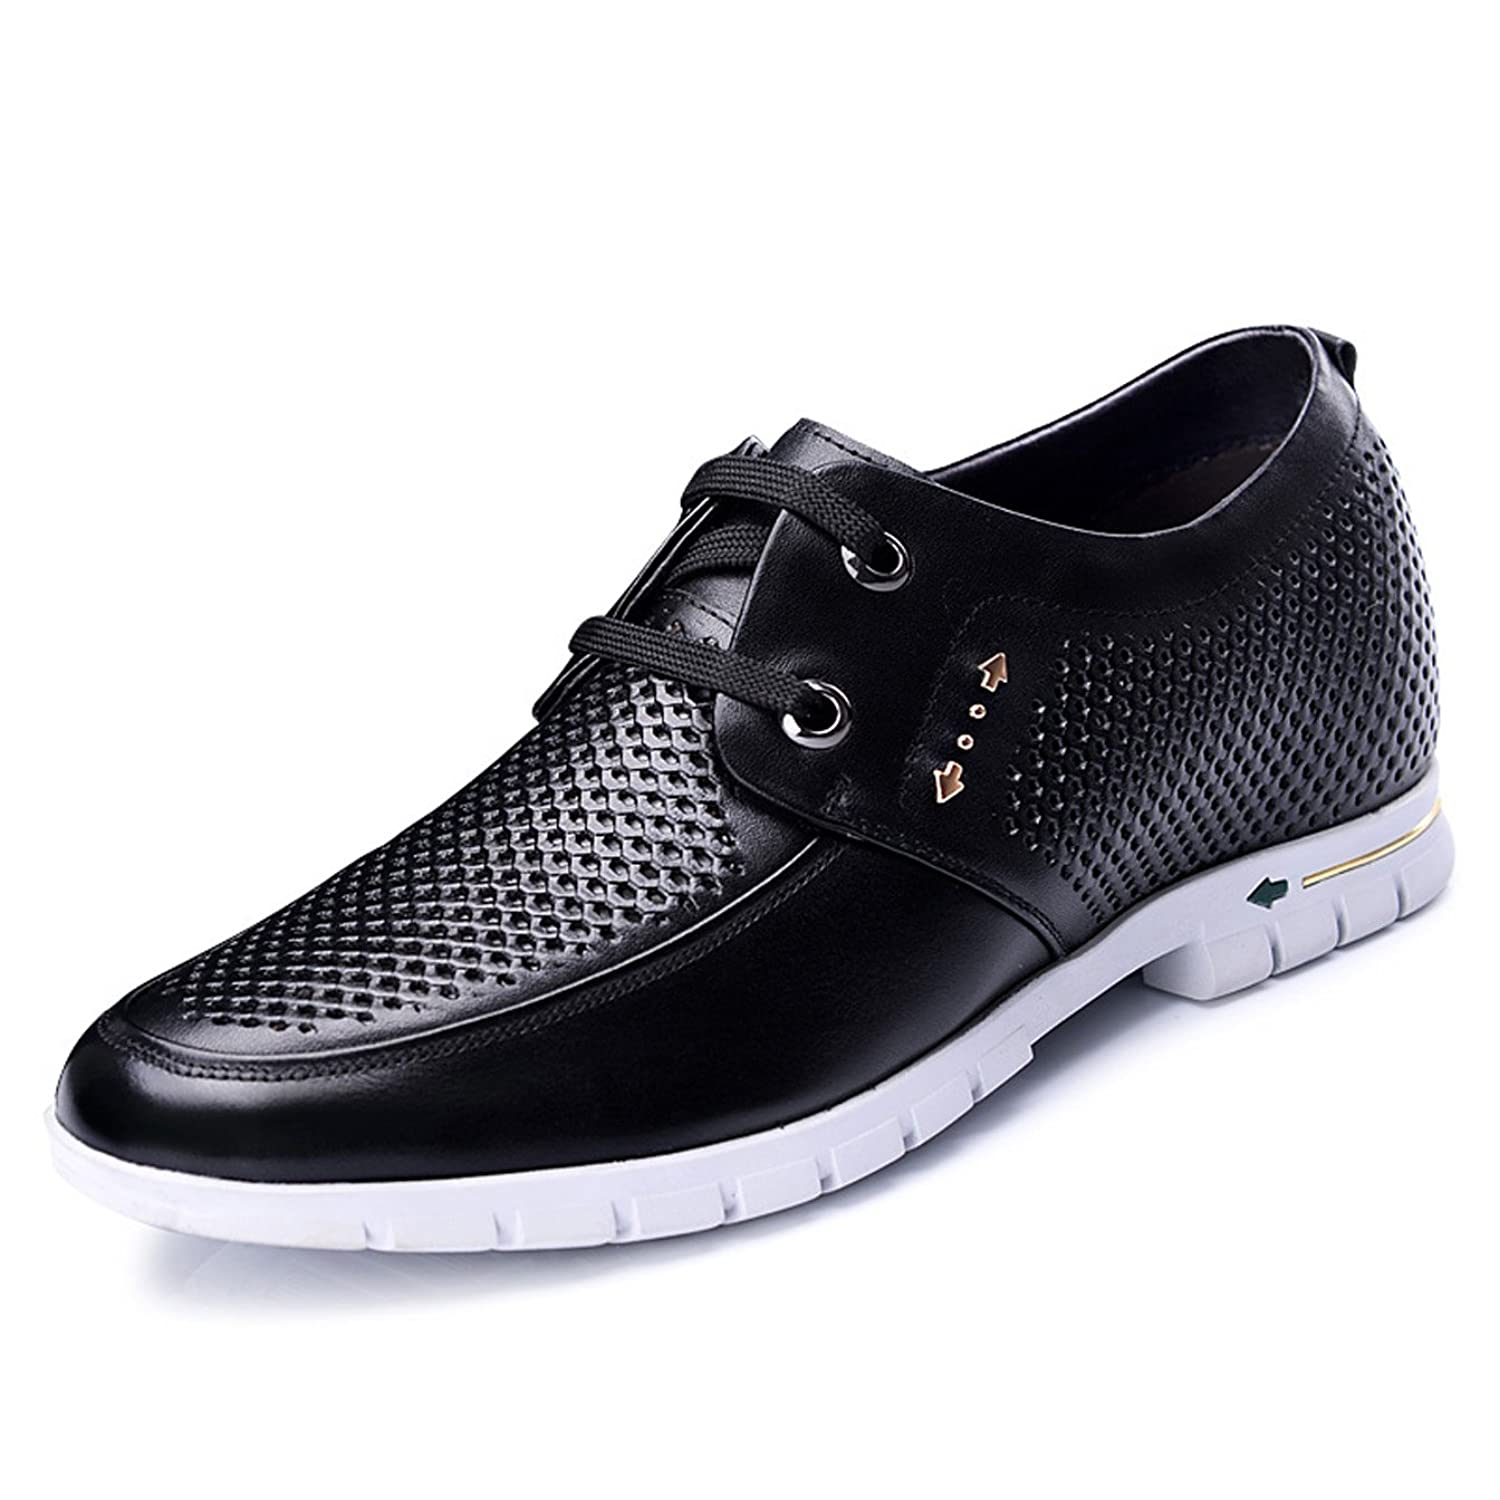 2.36 Inches Taller - Men's Height Increasing Elevator Oxfords-Black Breathable Leather Casual Shoes